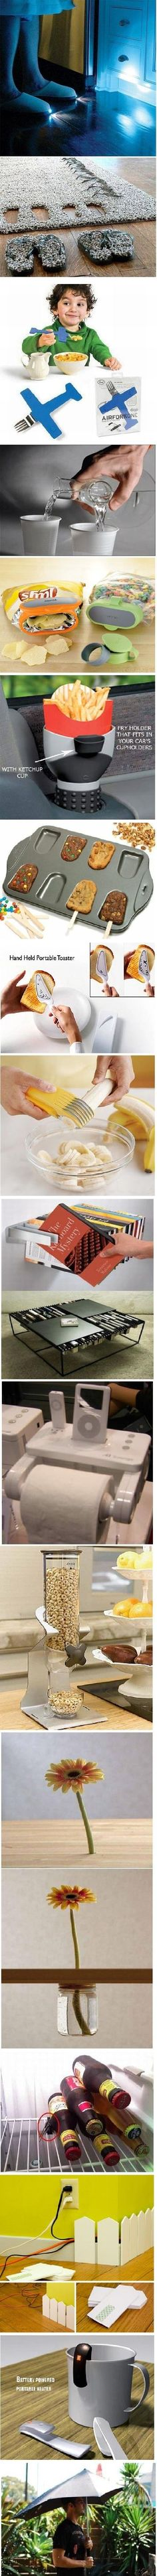 I need the book shelf thing!!!!!